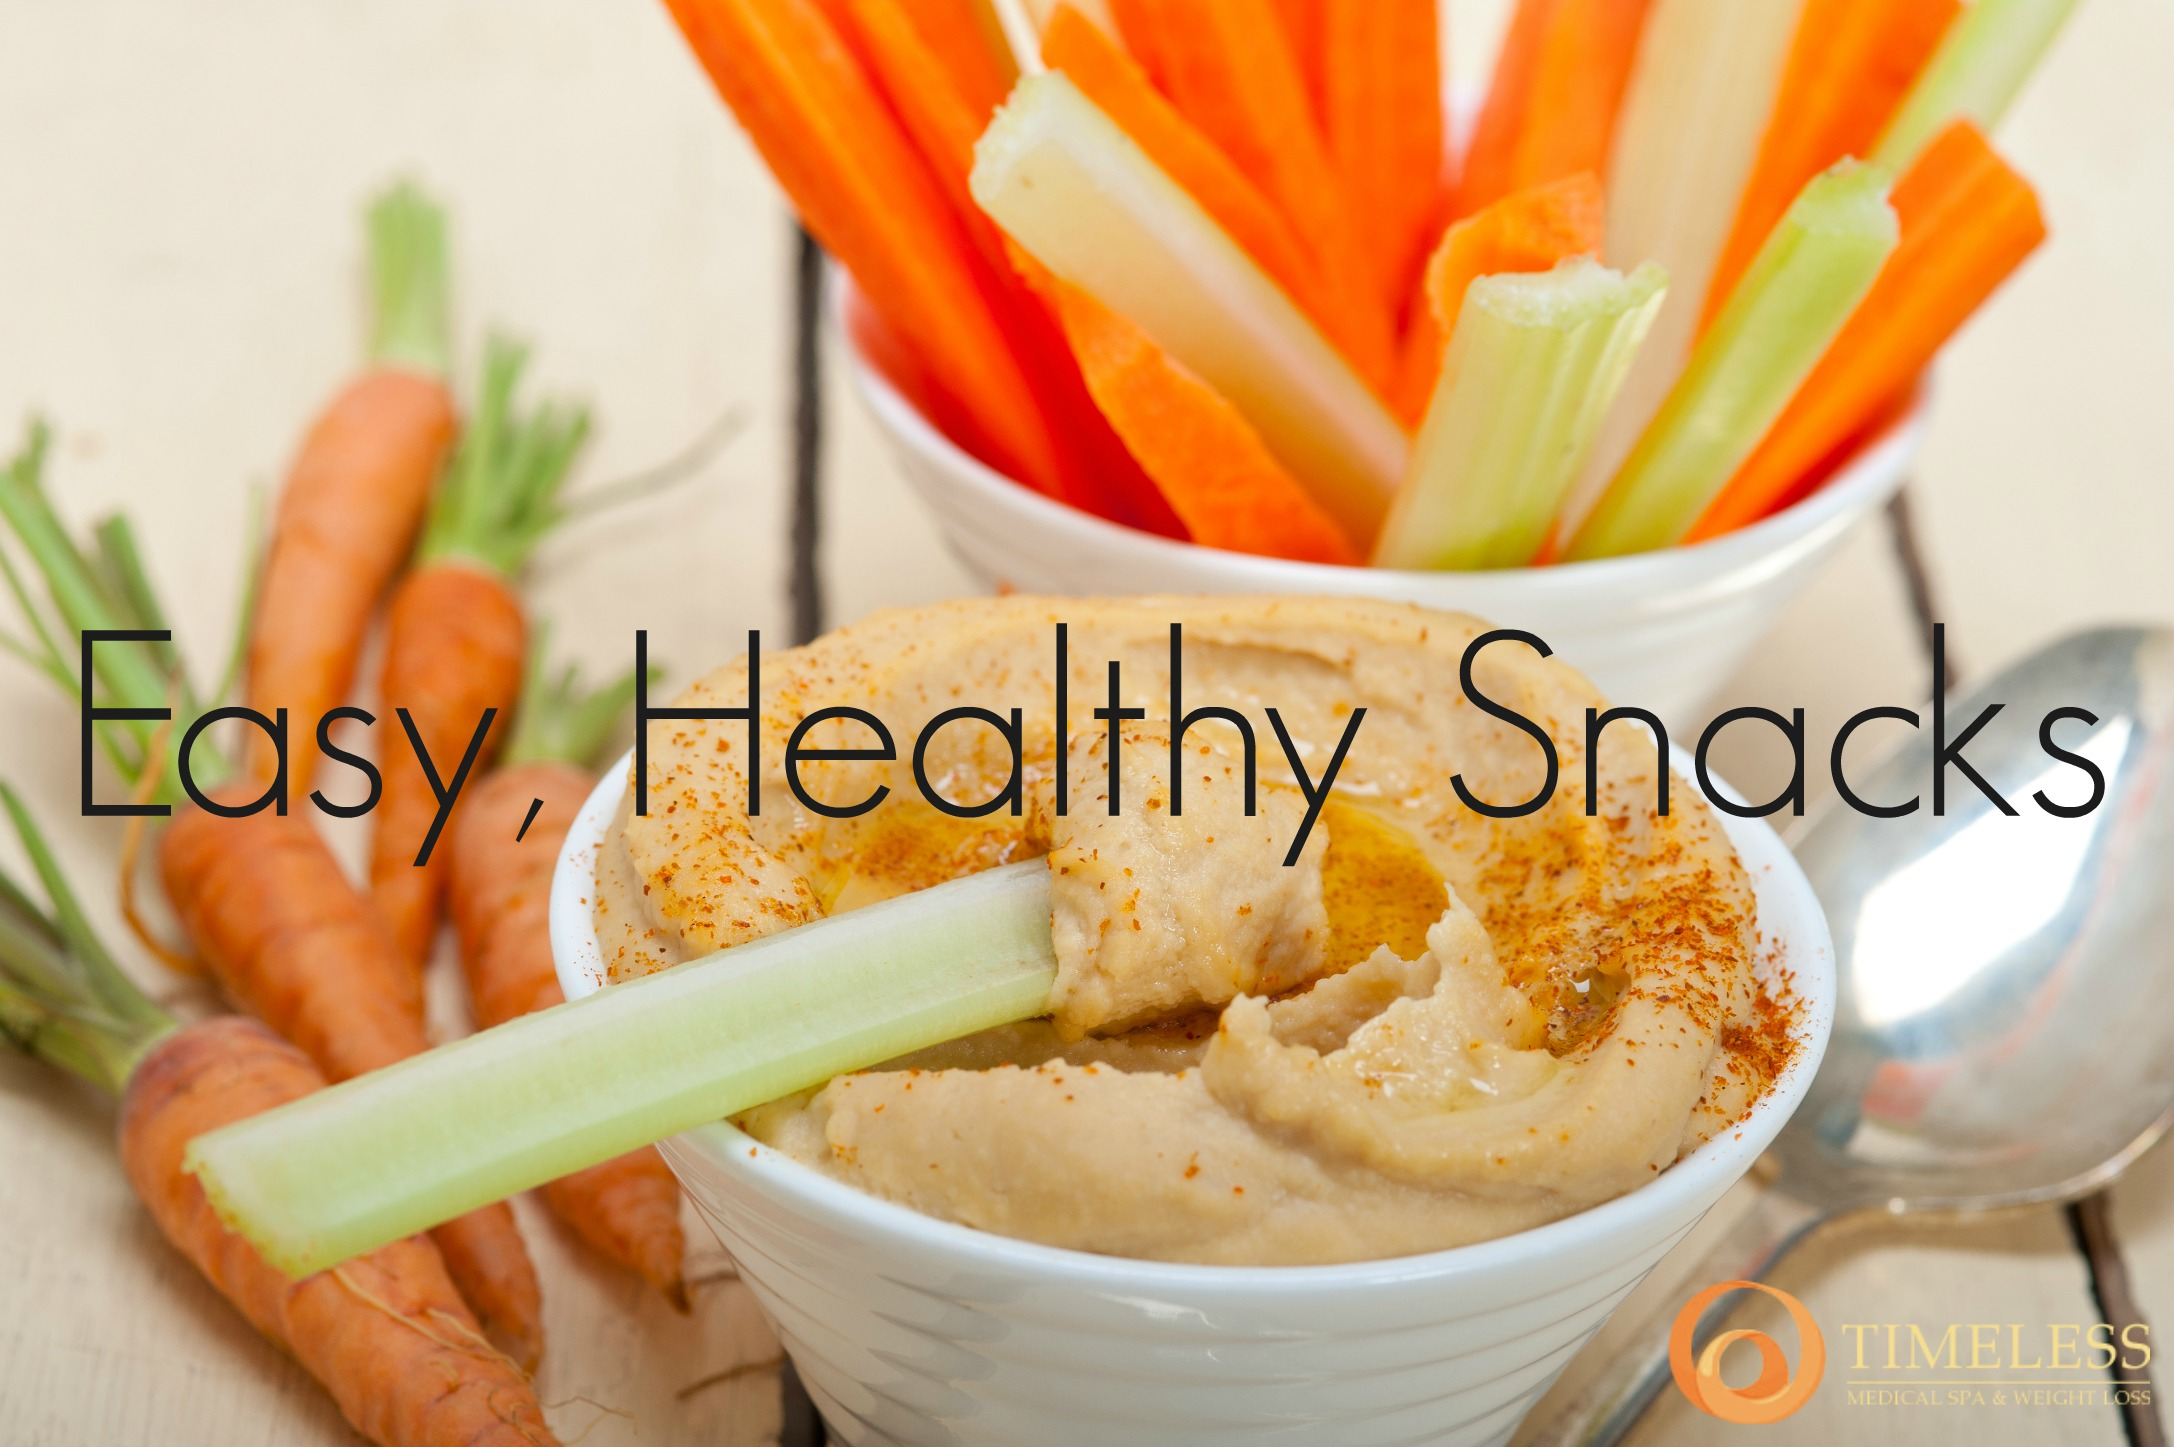 Easy, Healthy Snack Ideas from TimeLess Weight Loss Blog